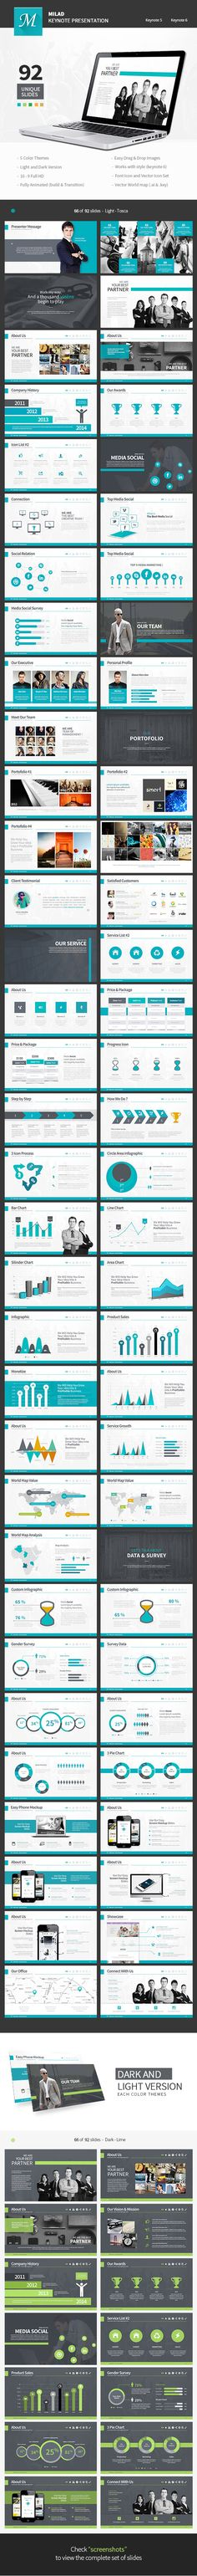 Business Proposal Powerpoint Template Business Proposal Proposals